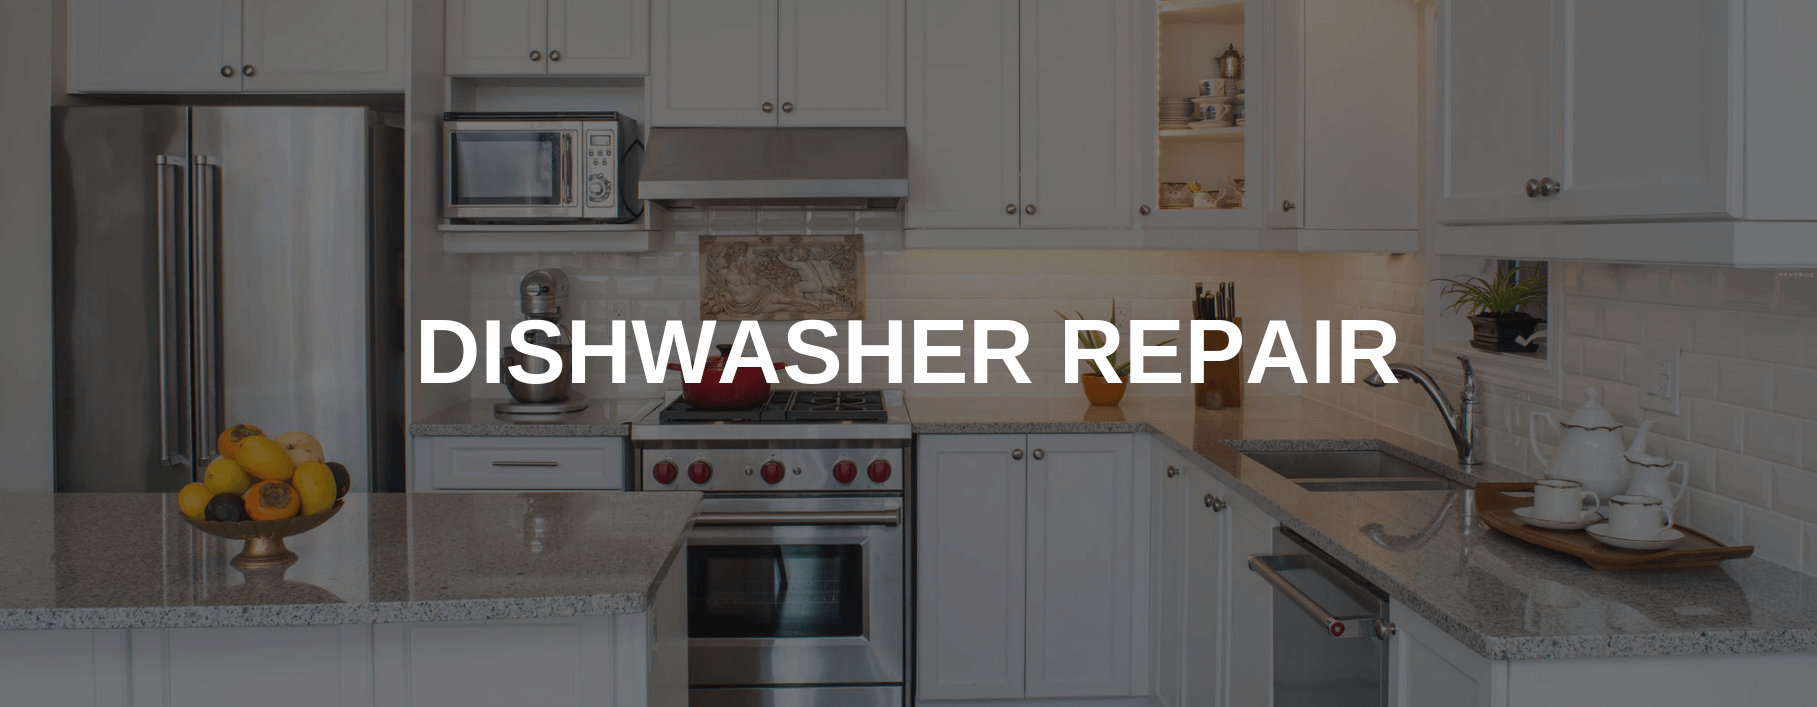 dishwasher repair meriden